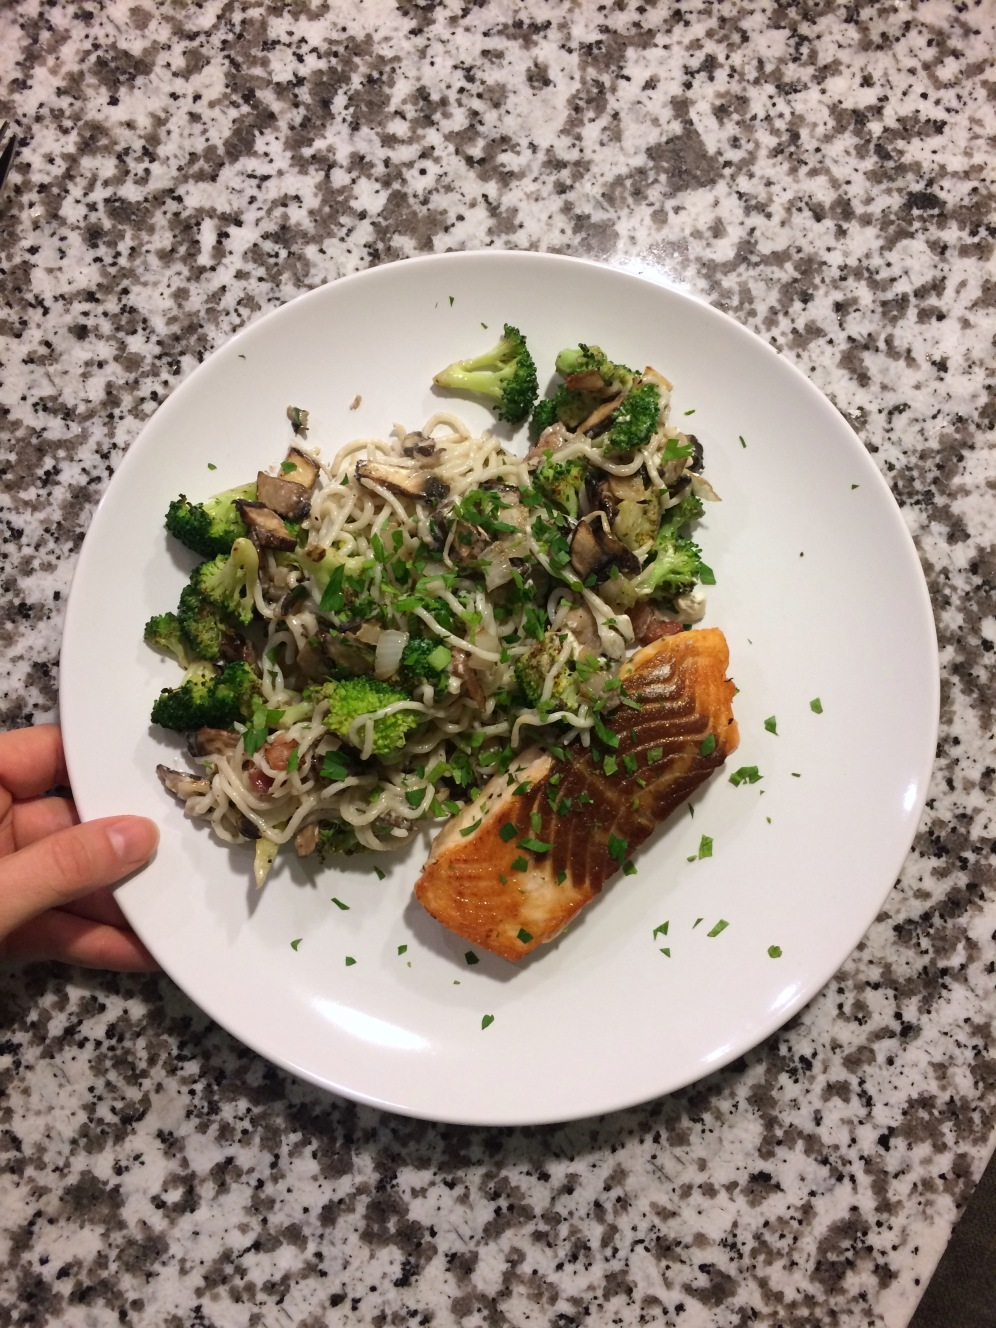 Salmon sauteed in butter, shirataki noodles cooked in butter with broccoli, mushrooms and a parmesan cream sauce